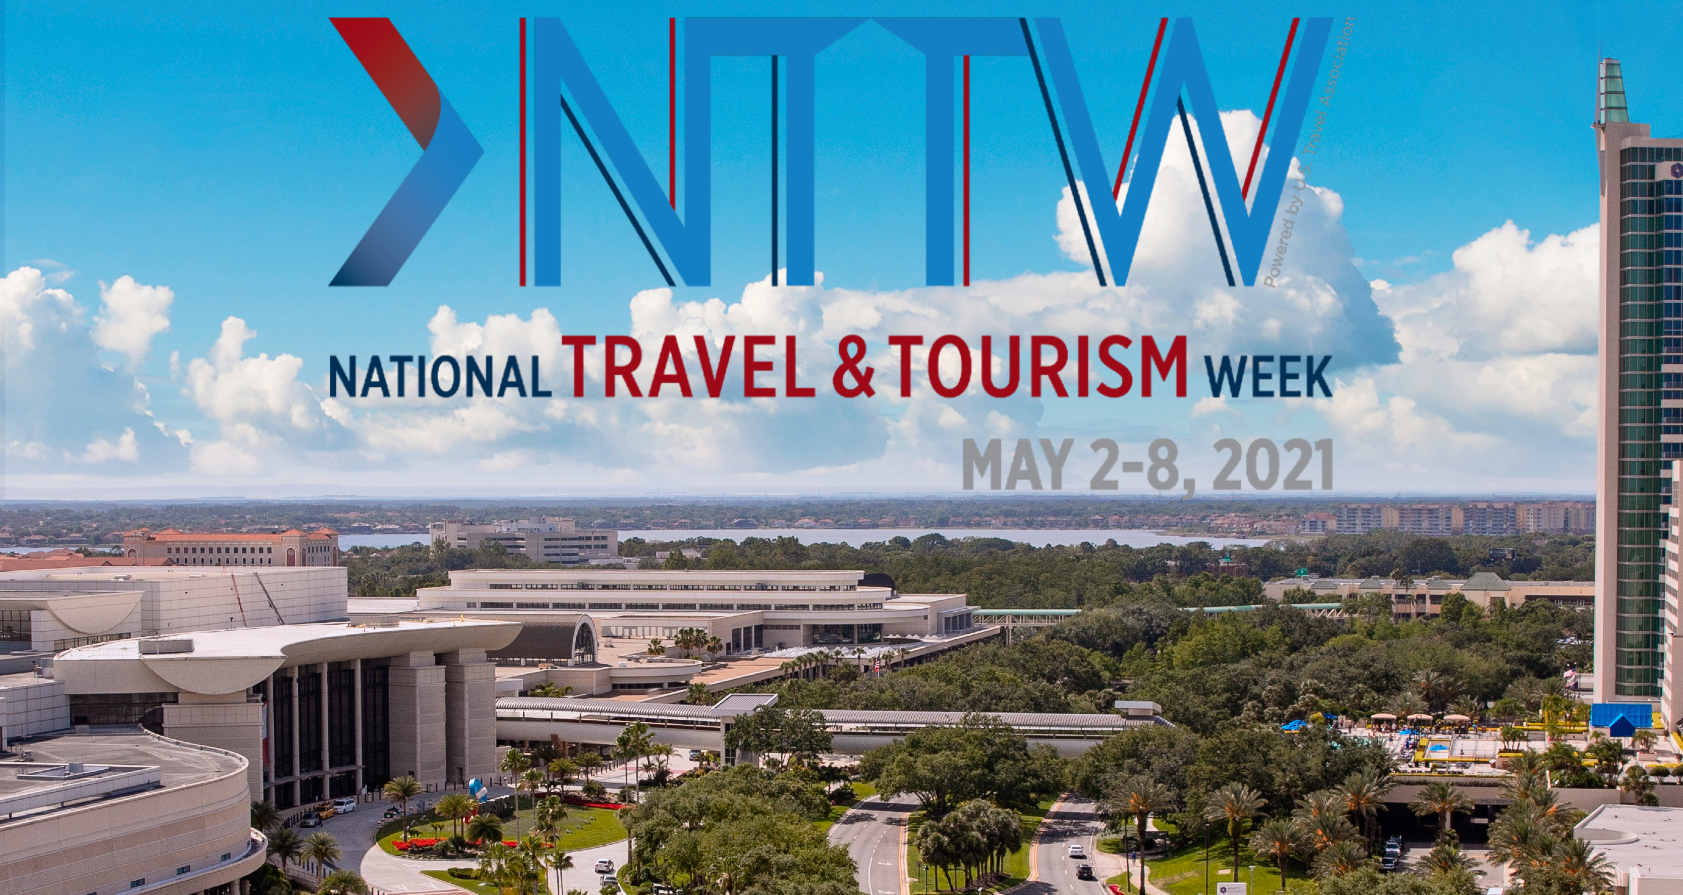 National Travel & Tourism Week, May 2-8